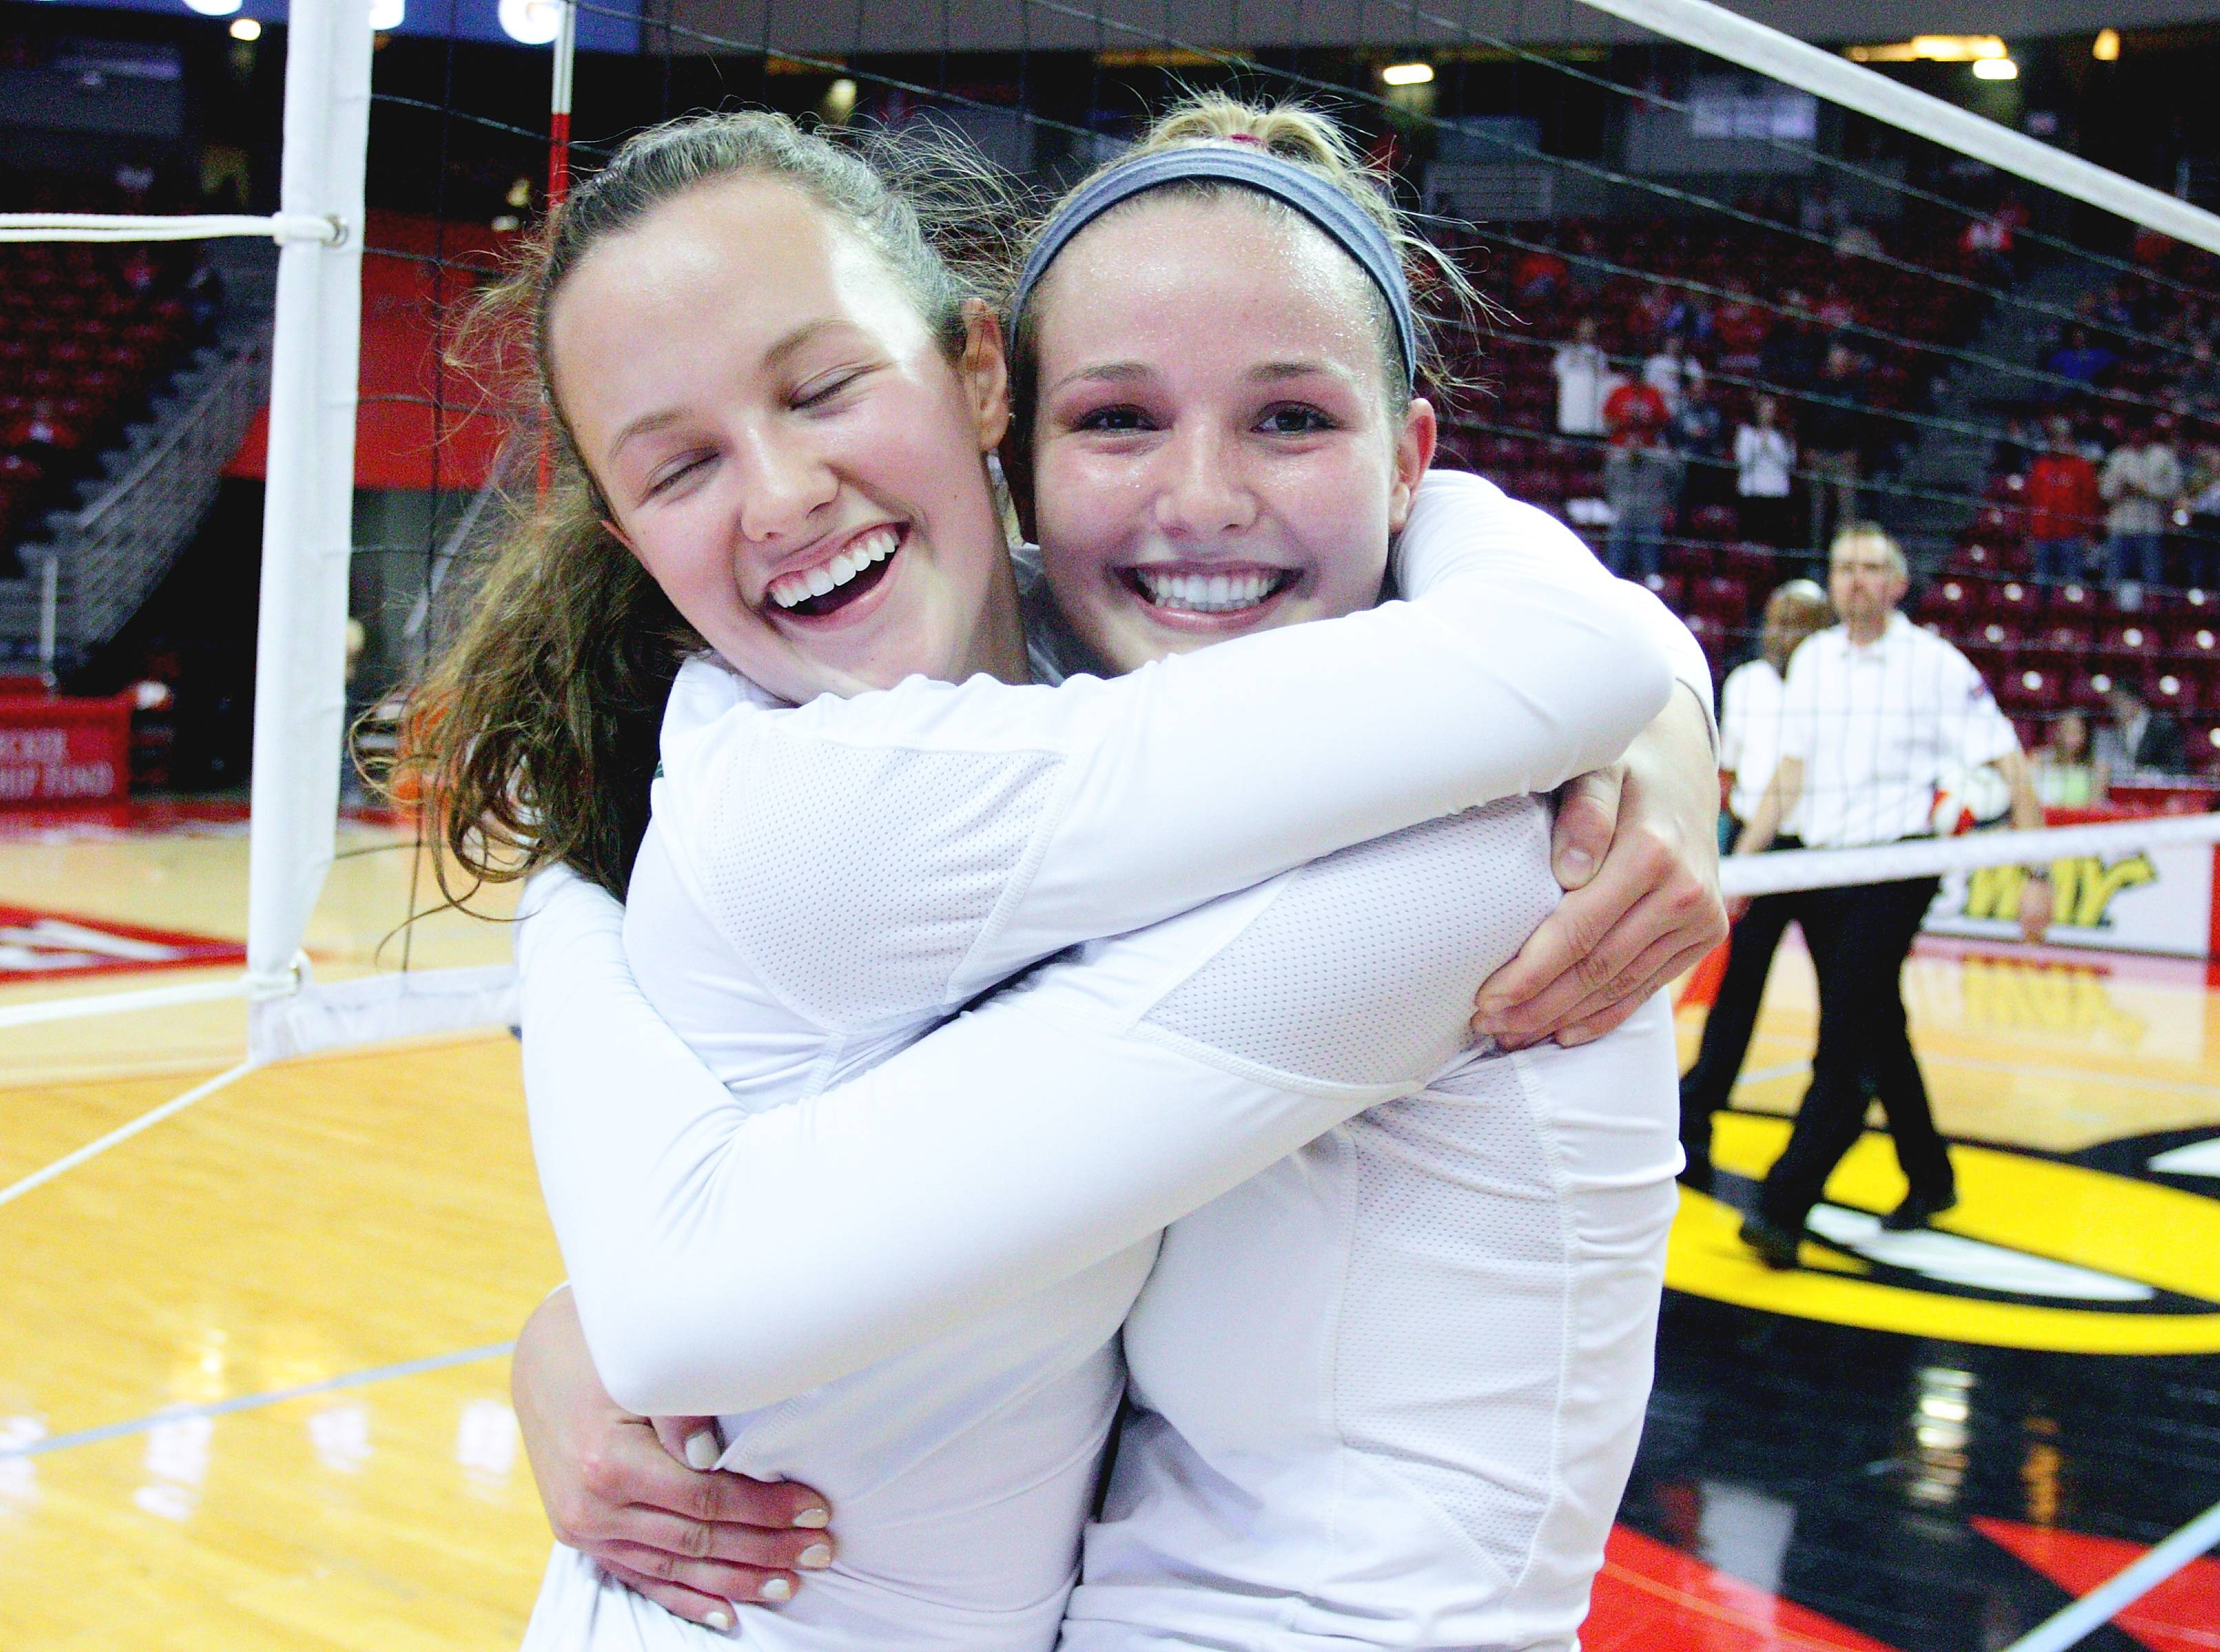 Stevenson's Sophie Sorenson and Jori Radtke embrace after their victory against Niles West in the Class 4A third-place game at Redbird Arena on Saturday. The Patriots won the third-place match over the Wolves 25-20, 21-25, 25-16.